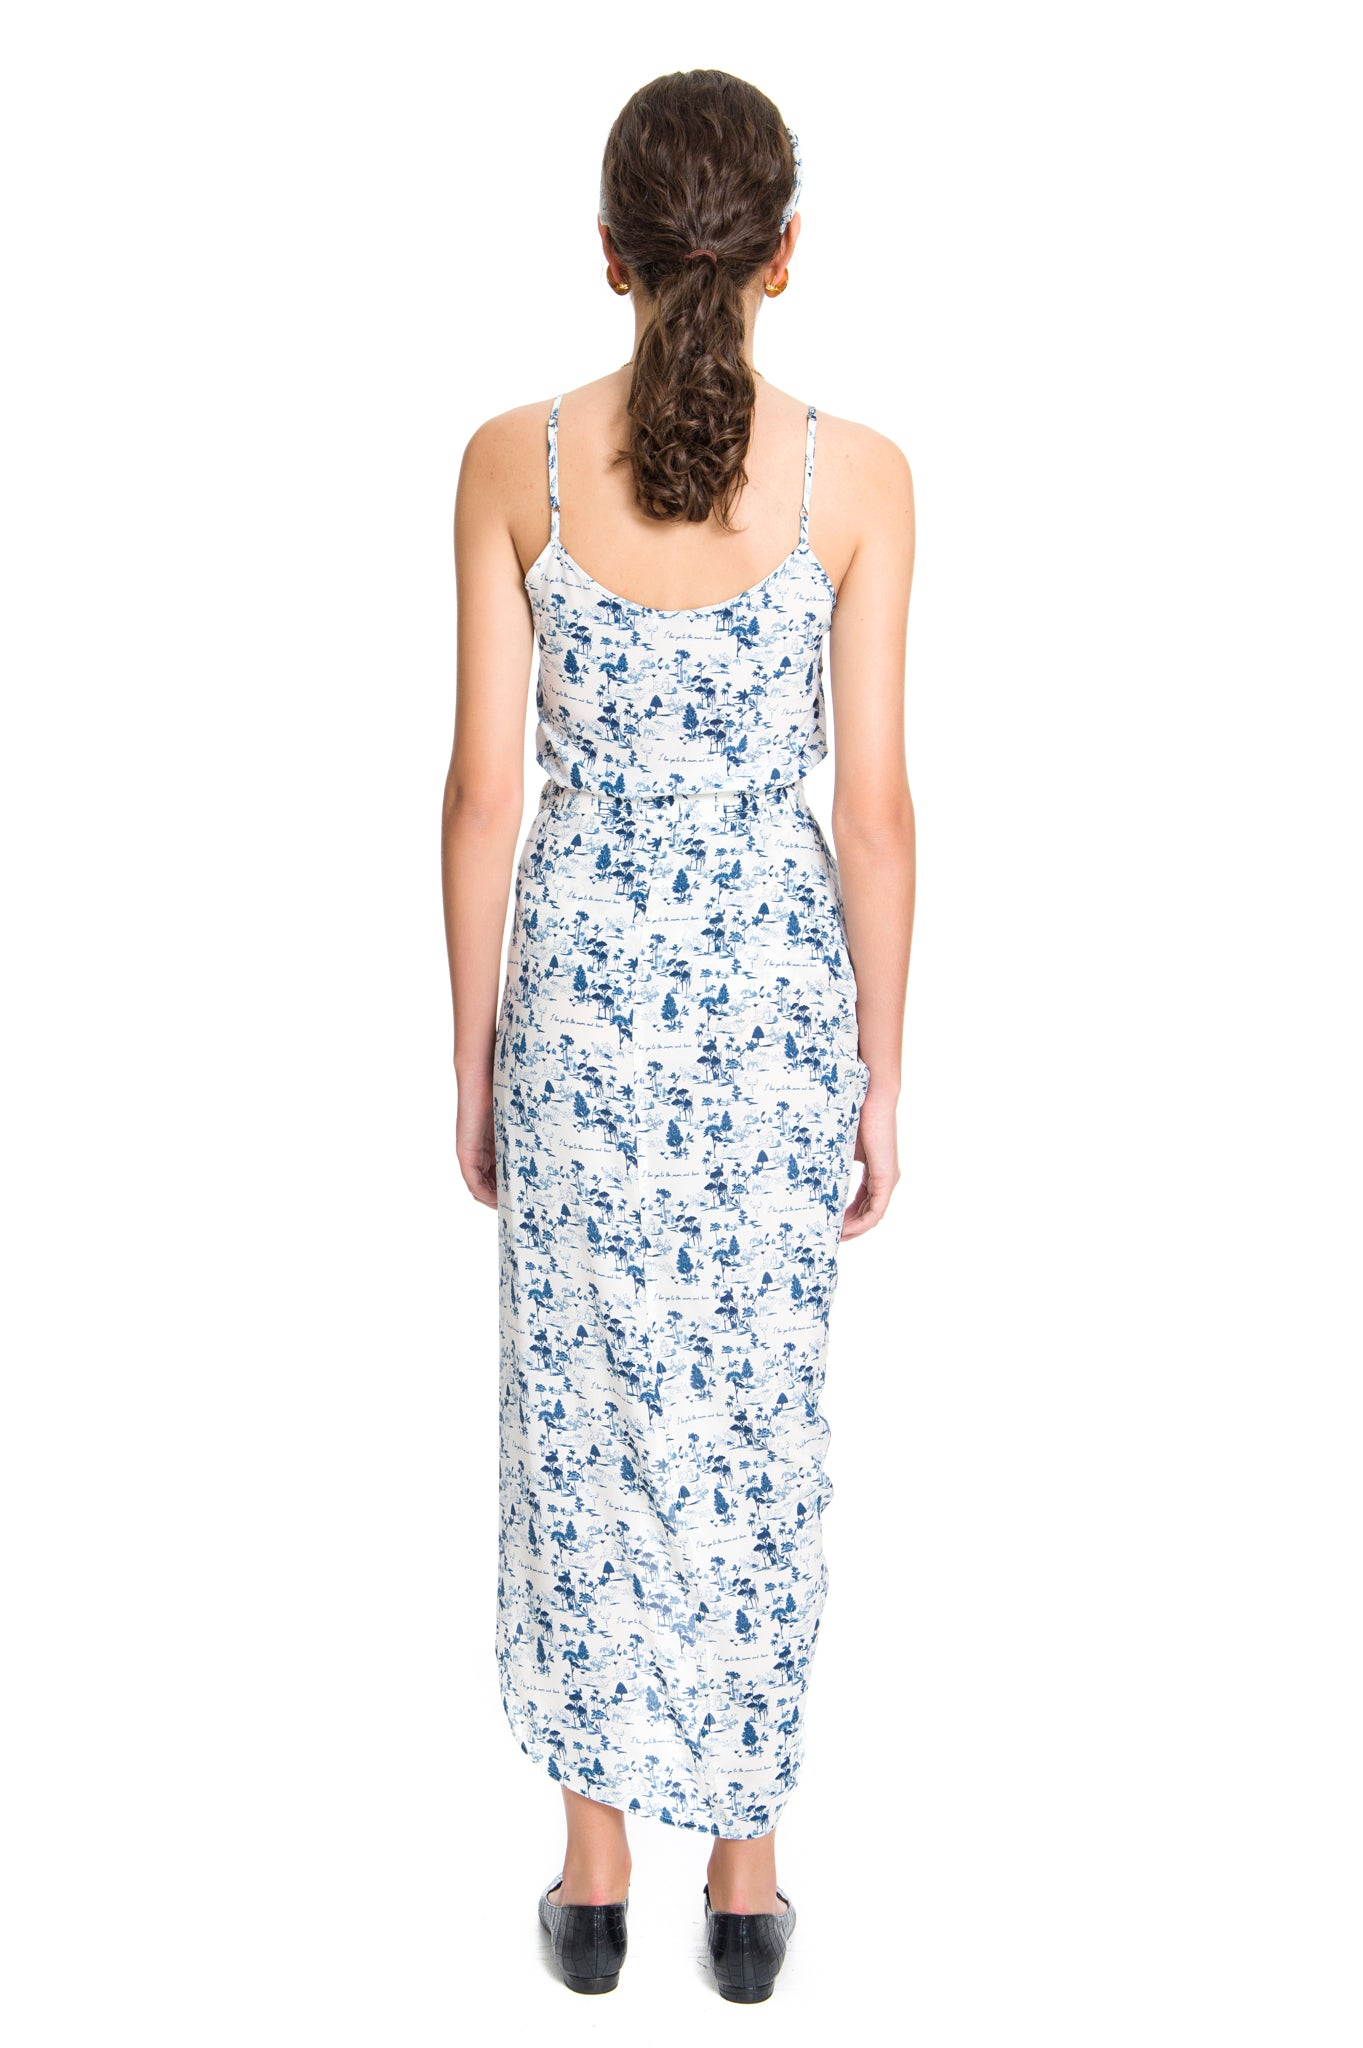 REGATA TOILE BLUE